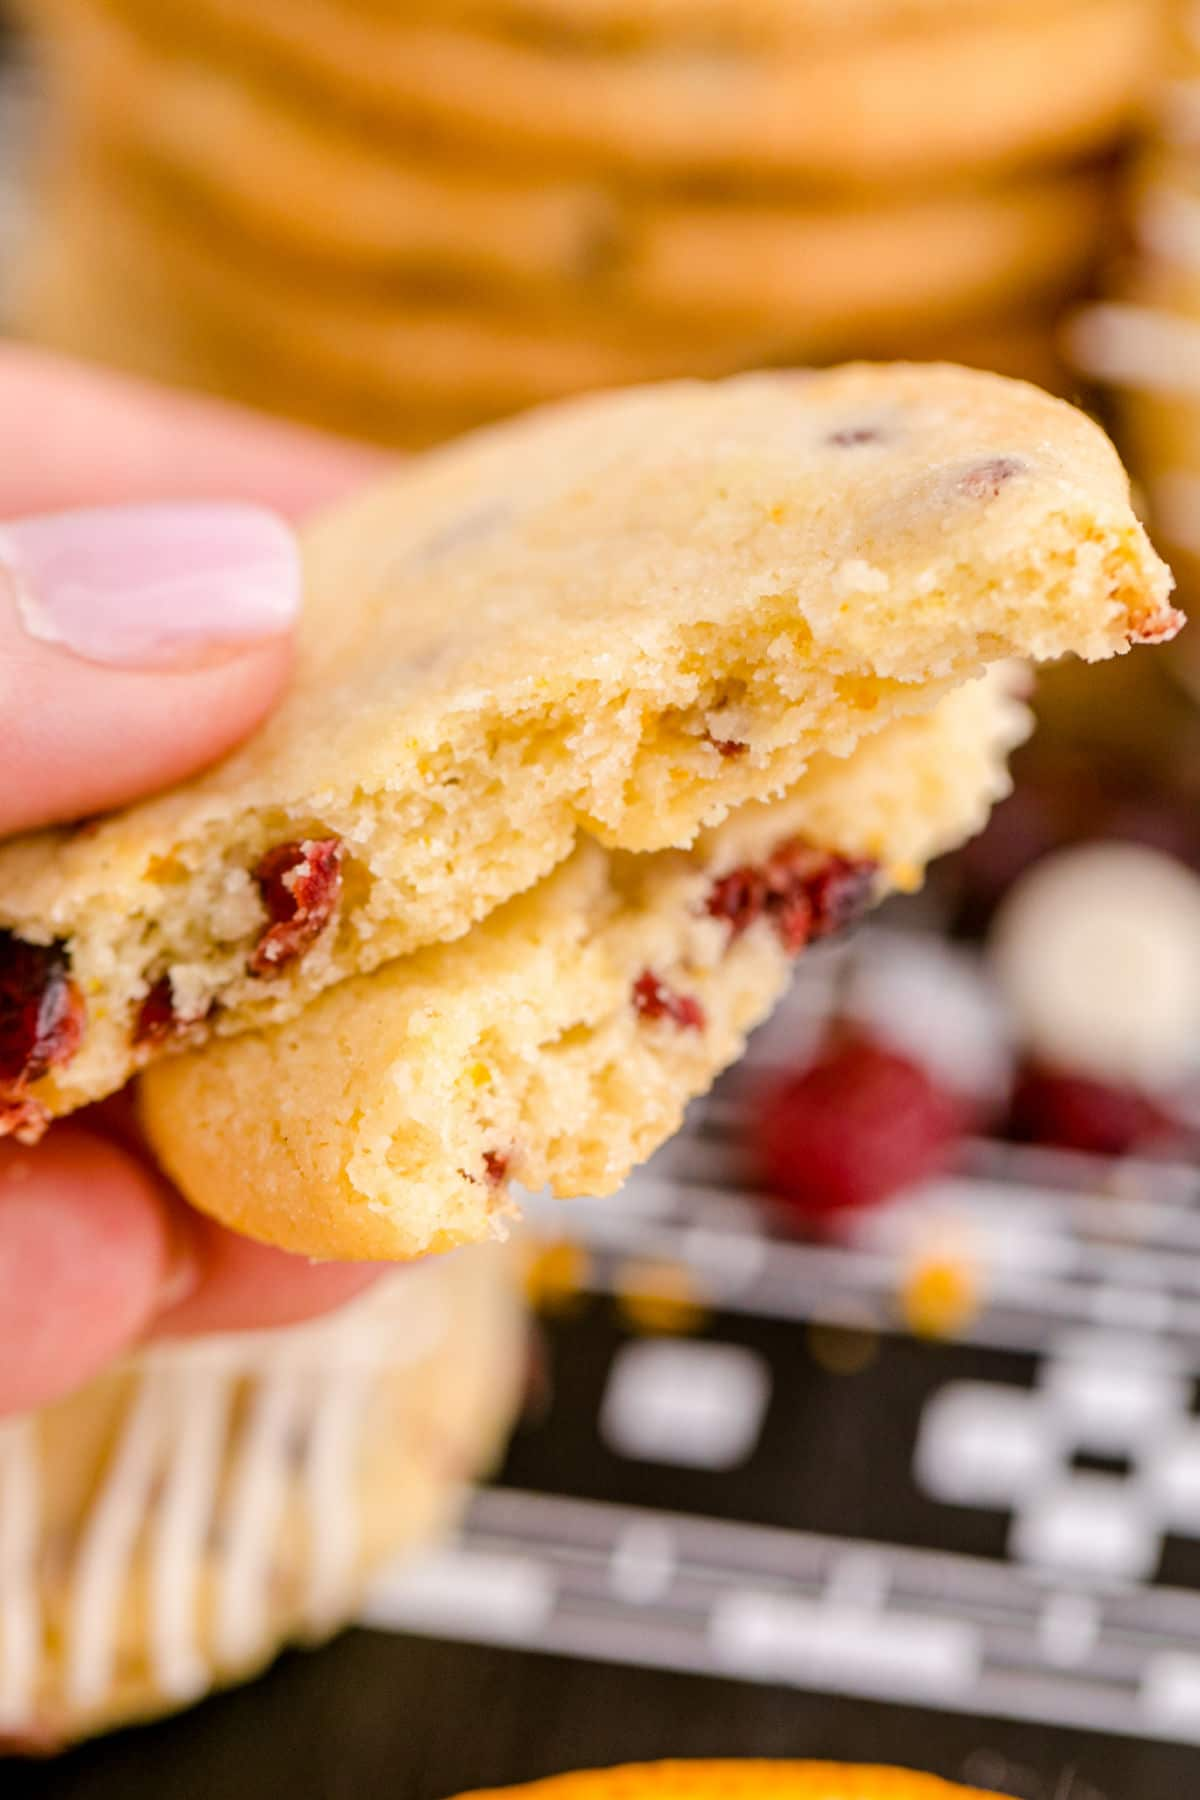 a cranberry orange shortbread cookie broken in half to see the inside of the cookie, close up